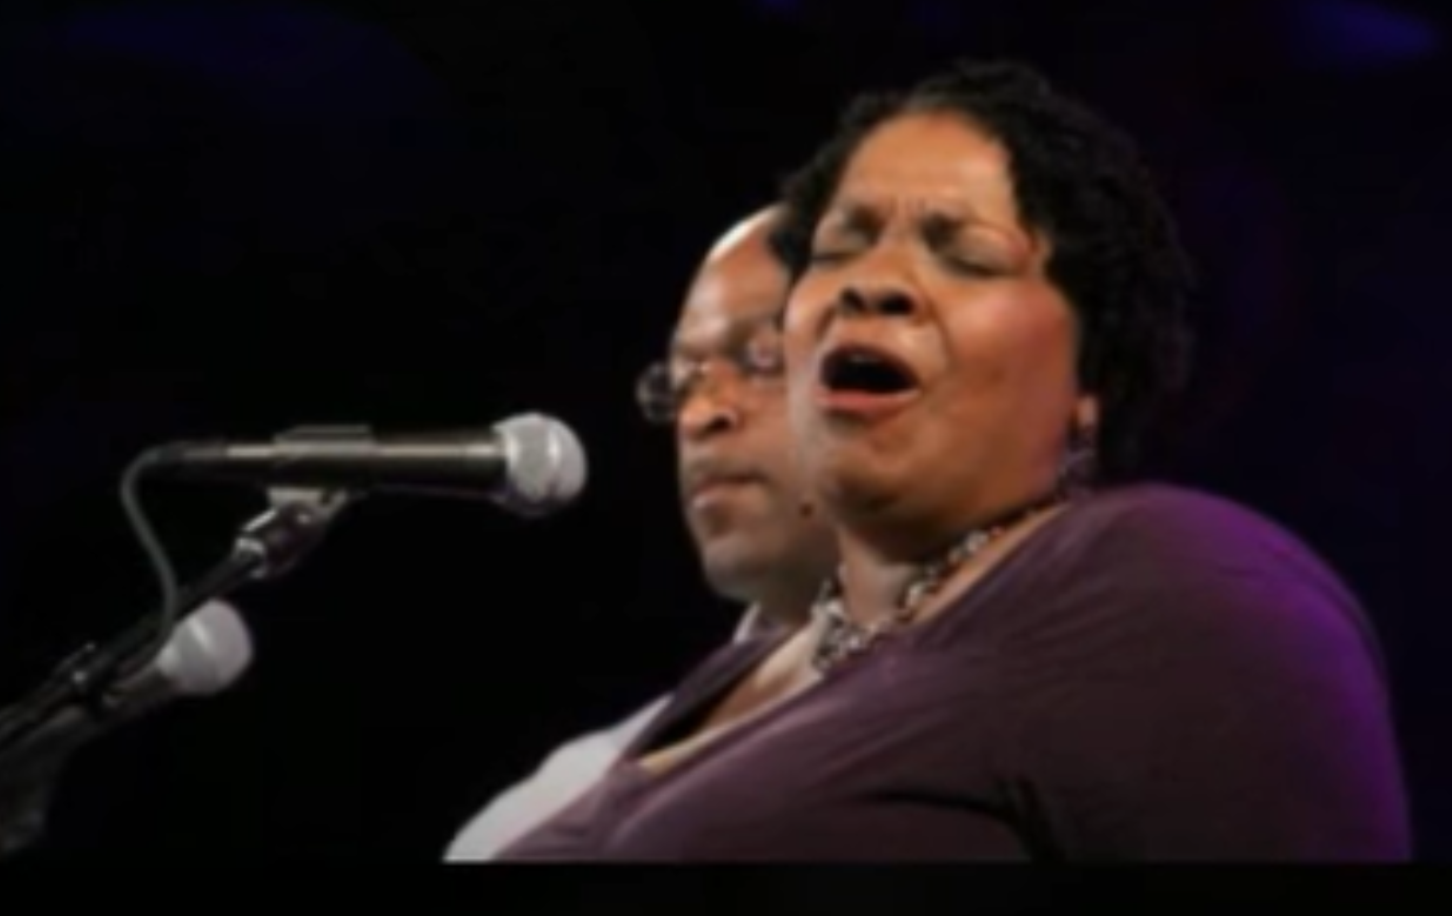 Michelle Crenshaw - A powerful vocalist, singing Jazz, Gospel, Rhythm & Blues and Hip Hop.Thursday, June 27th; Thursday, July 25th; Thursday, August 29th